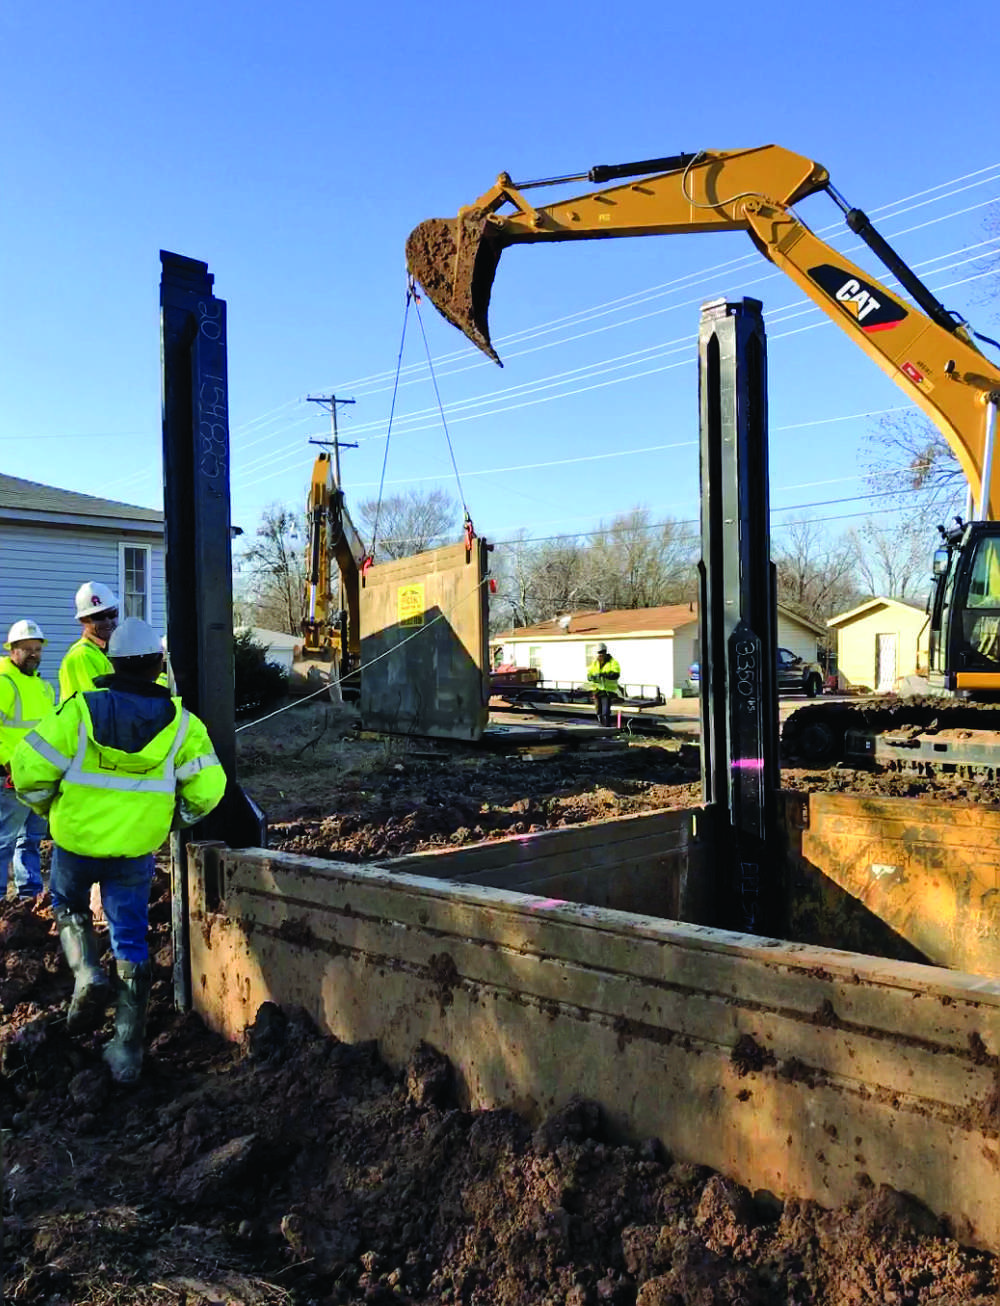 """""""We only had about a 25 ft. radius of space around where the wet-well was going to go, so we didn't have any room for sloping or benching,"""" said RedStone's Kurt Cosse. """"Riggs happened to have a Slide Rail System that we needed and everything kind of fell into place."""""""